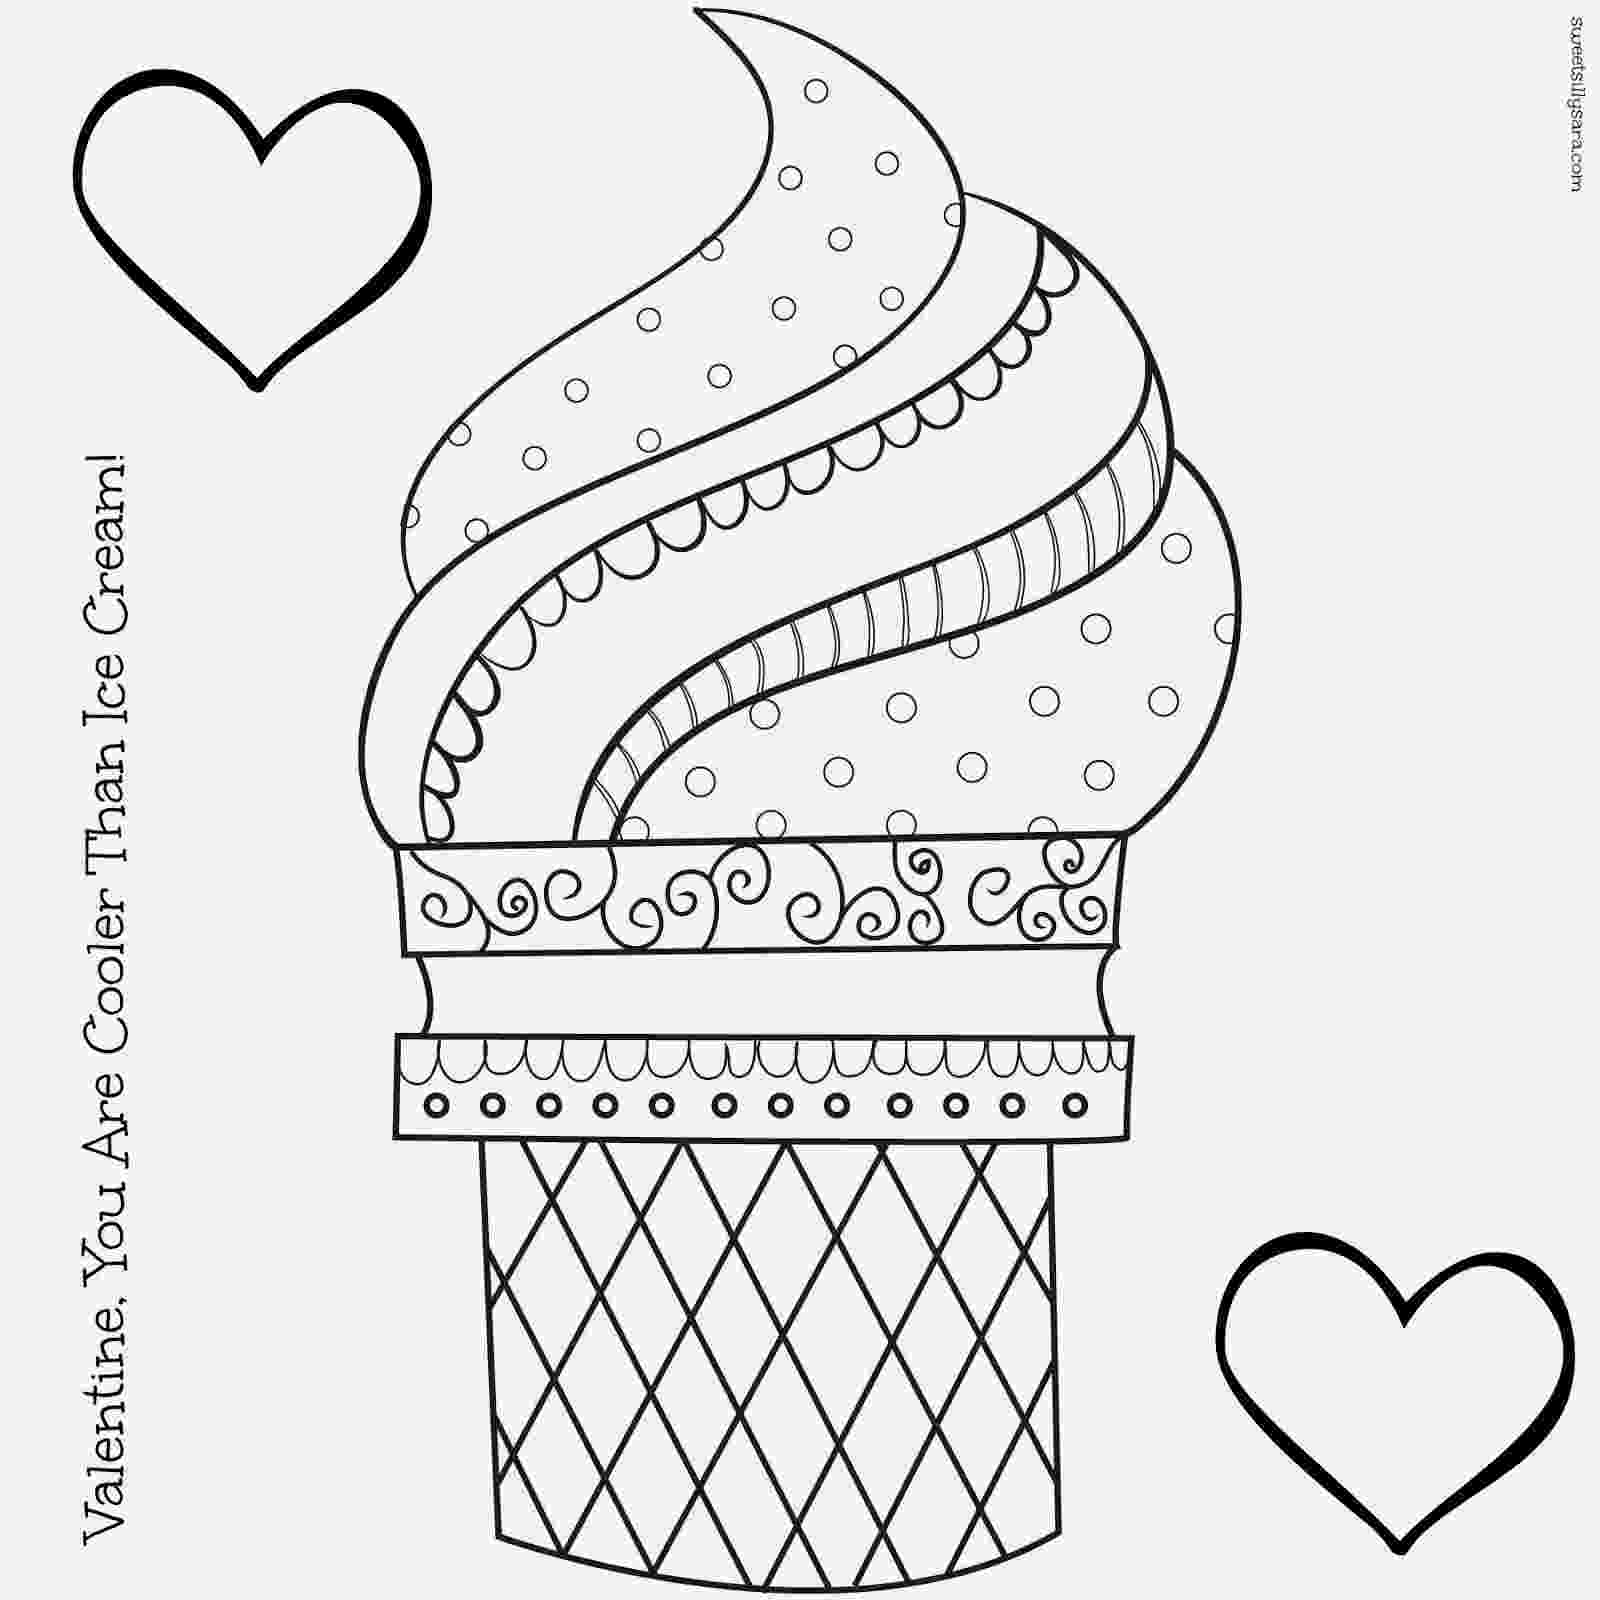 printable coloring pages for girls 10 and up coloring pages for girls 10 and up timeless miraclecom printable for and coloring up girls 10 pages